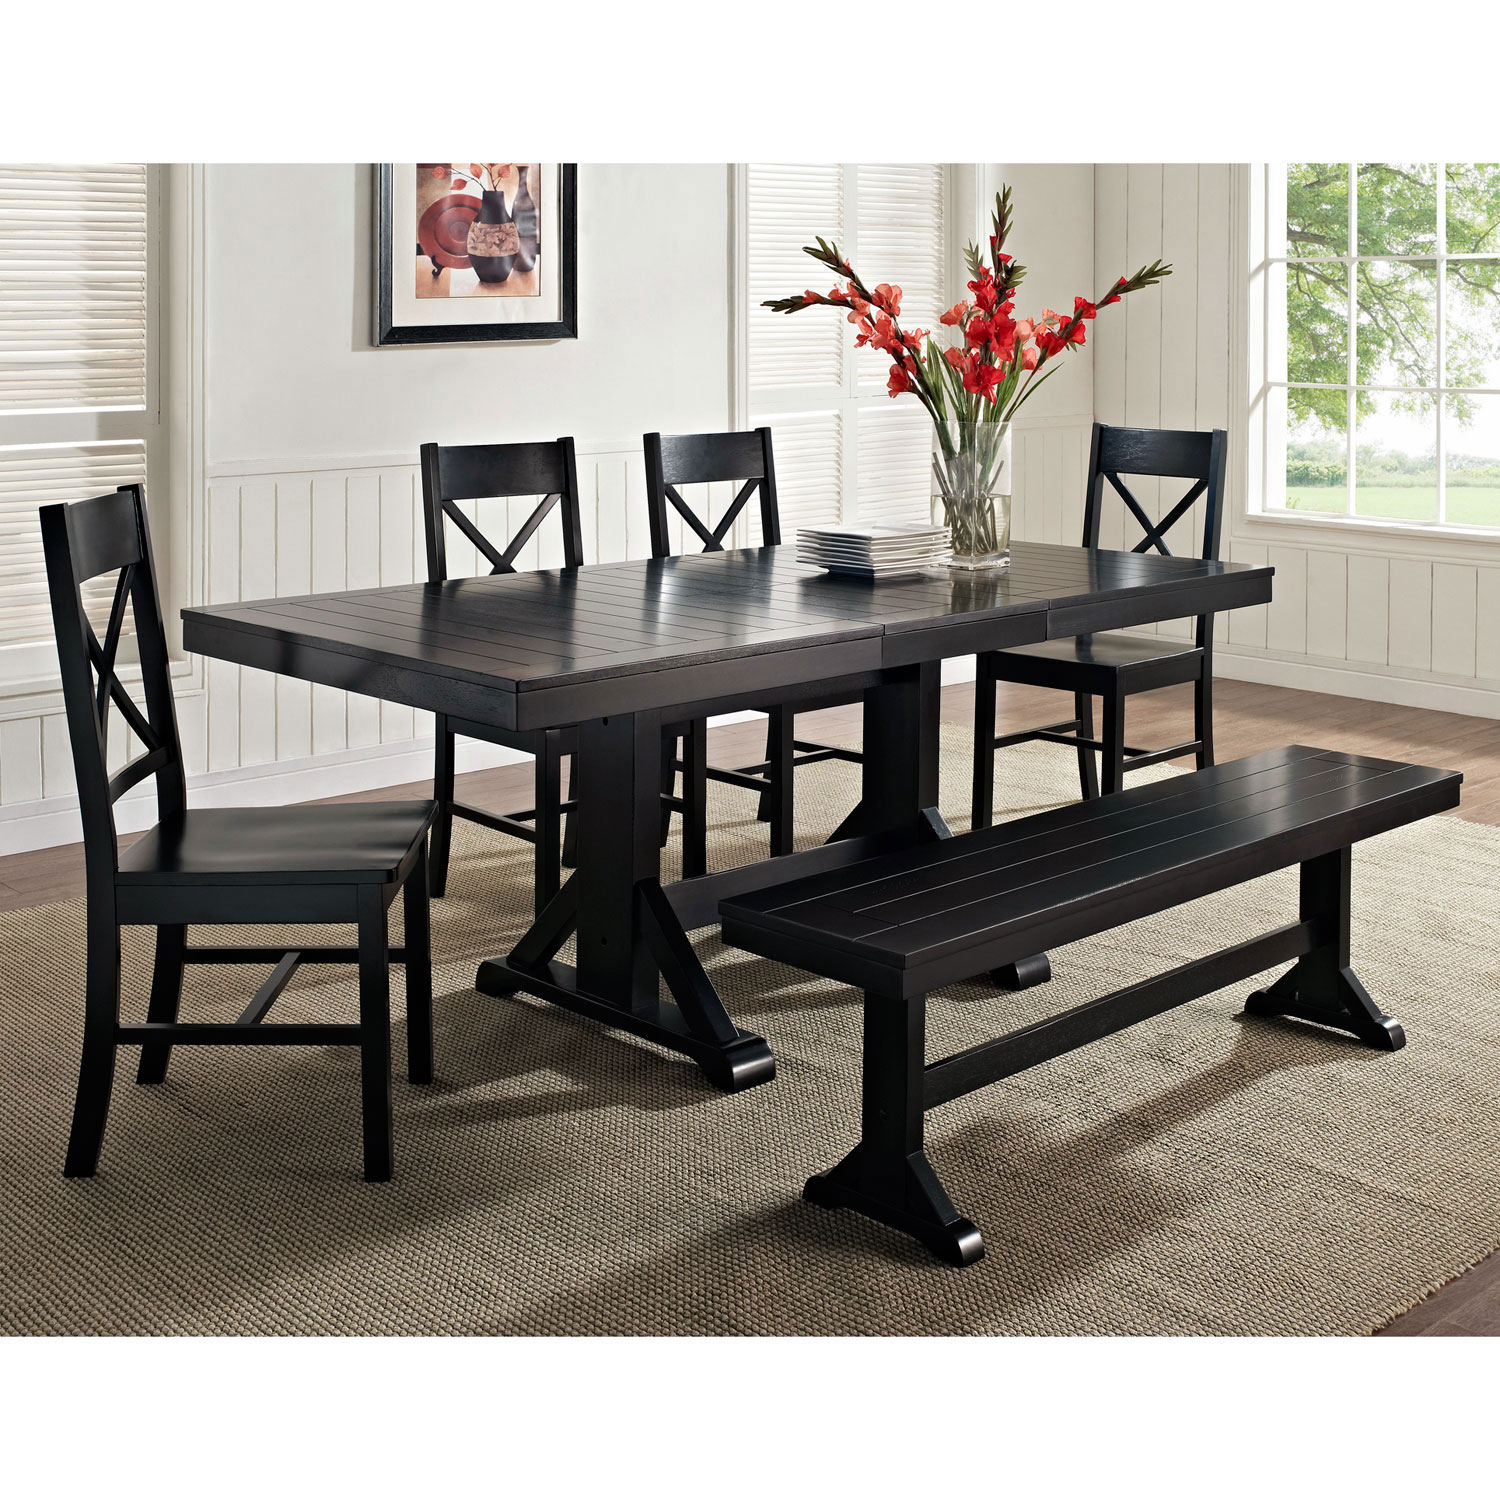 Millwright Wood Dining Chair X Back Black Set Of 2